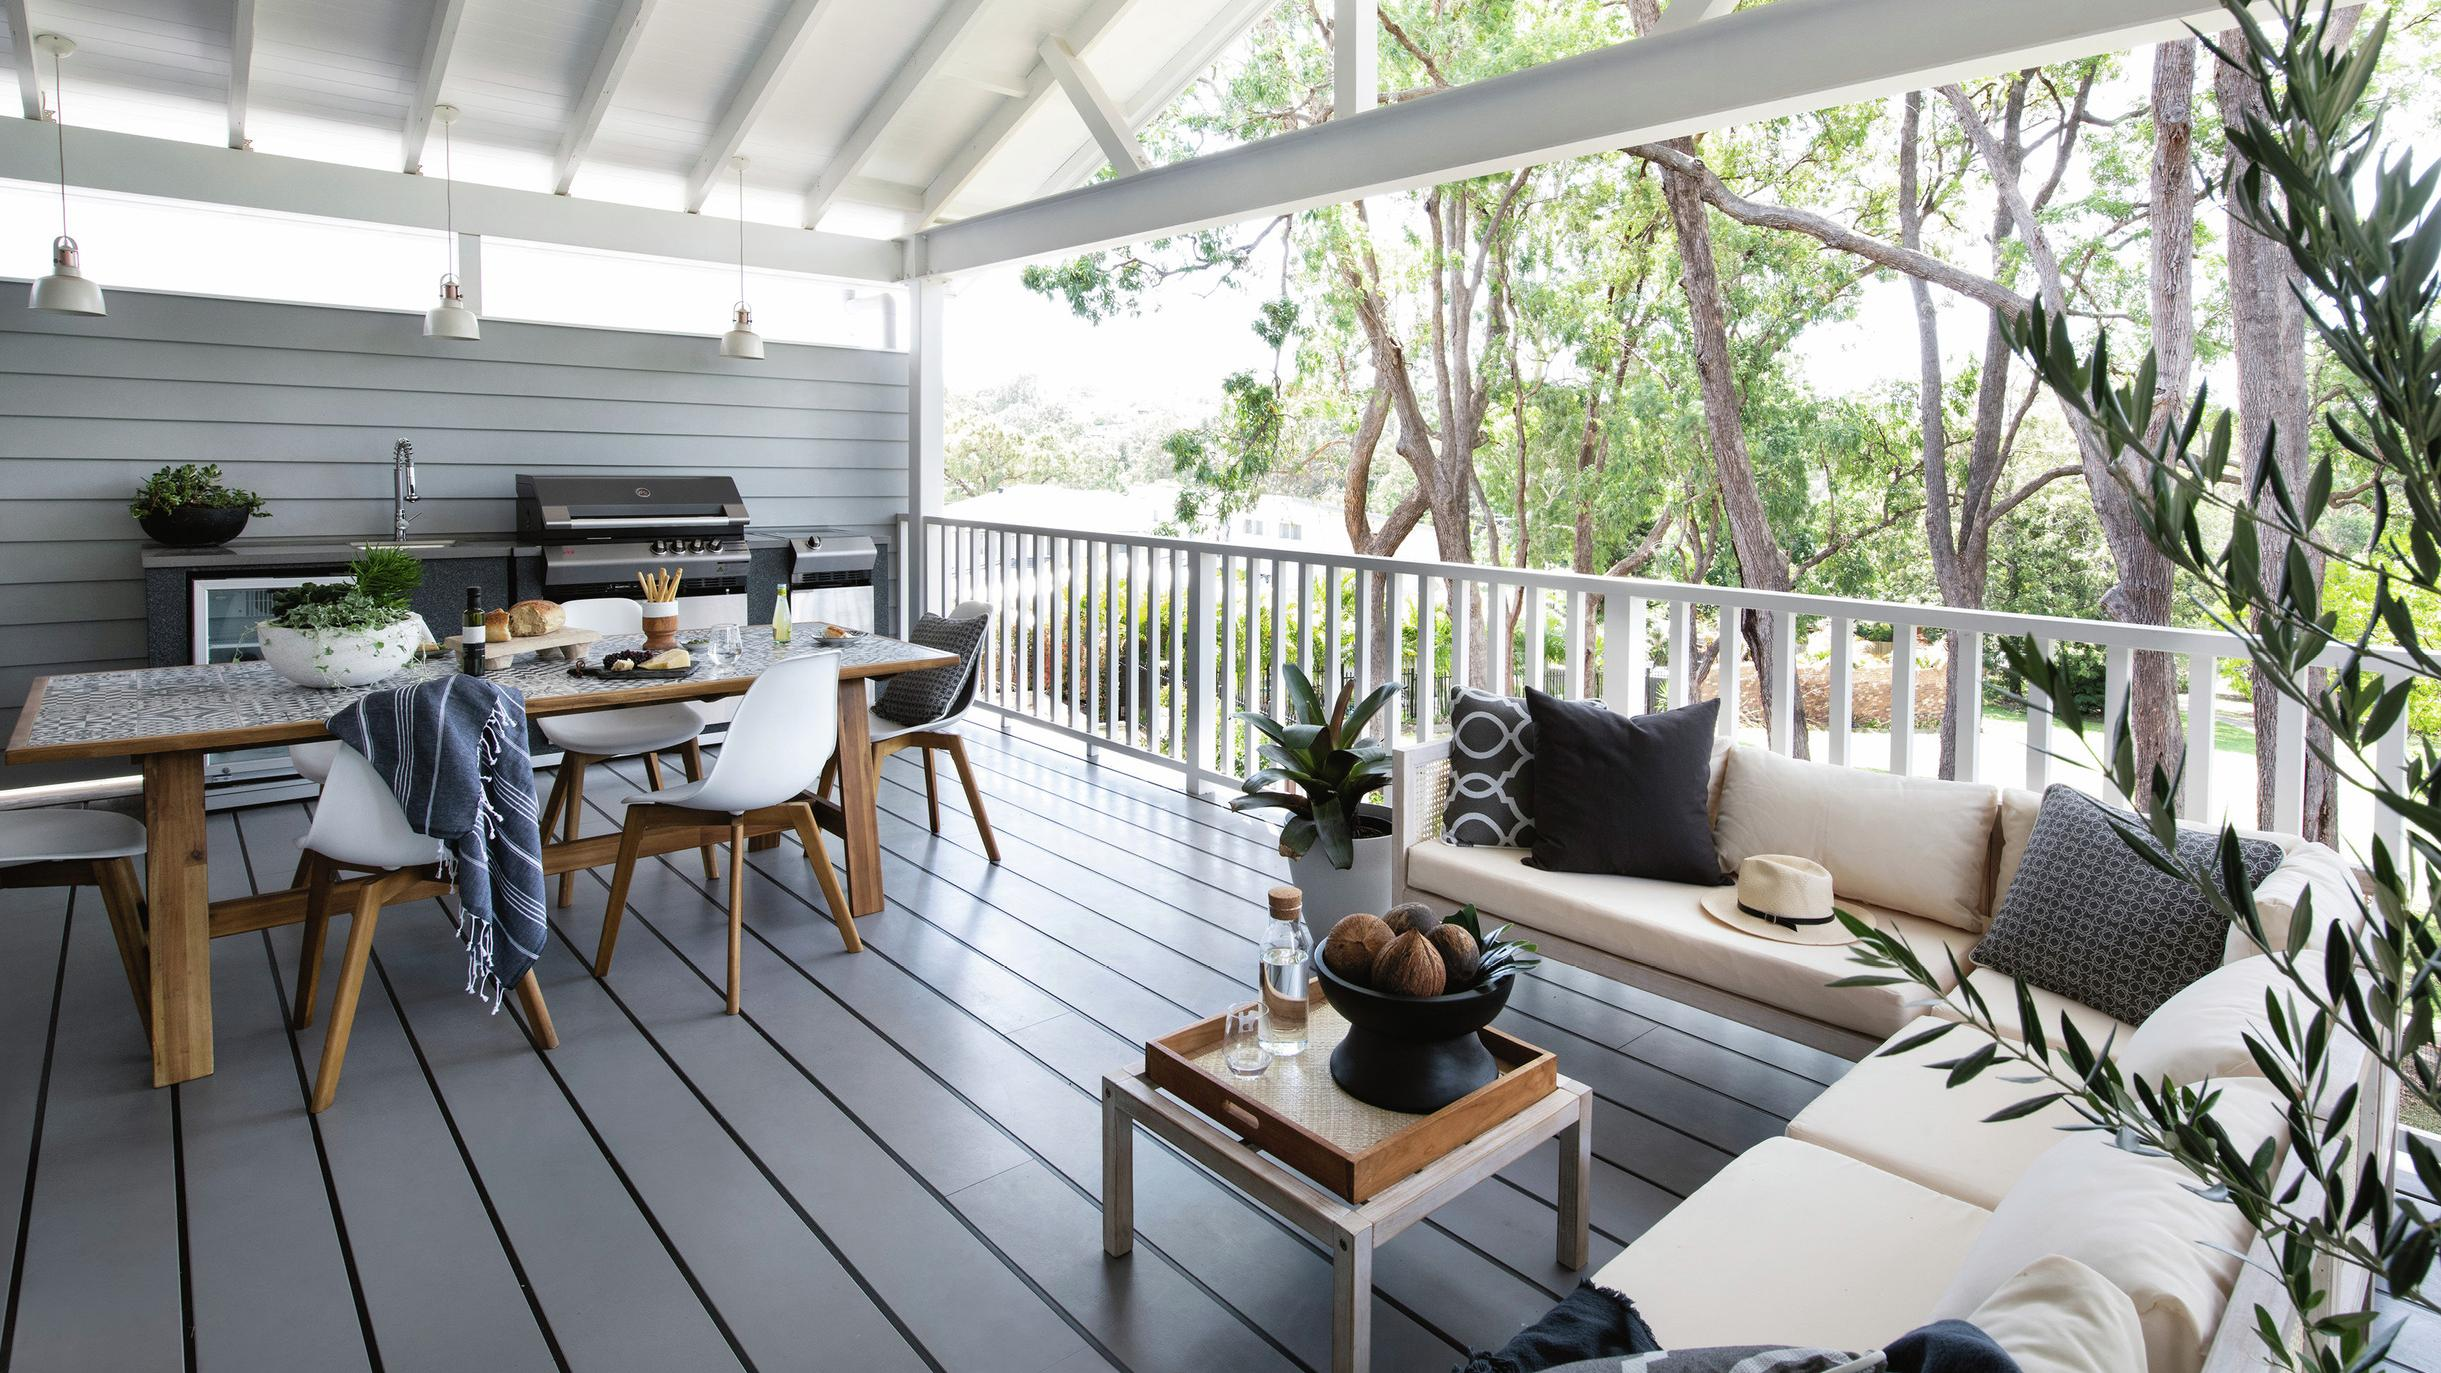 Outdoor area featuring dining and lounge furniture, and BBQ, on top of grey deck.